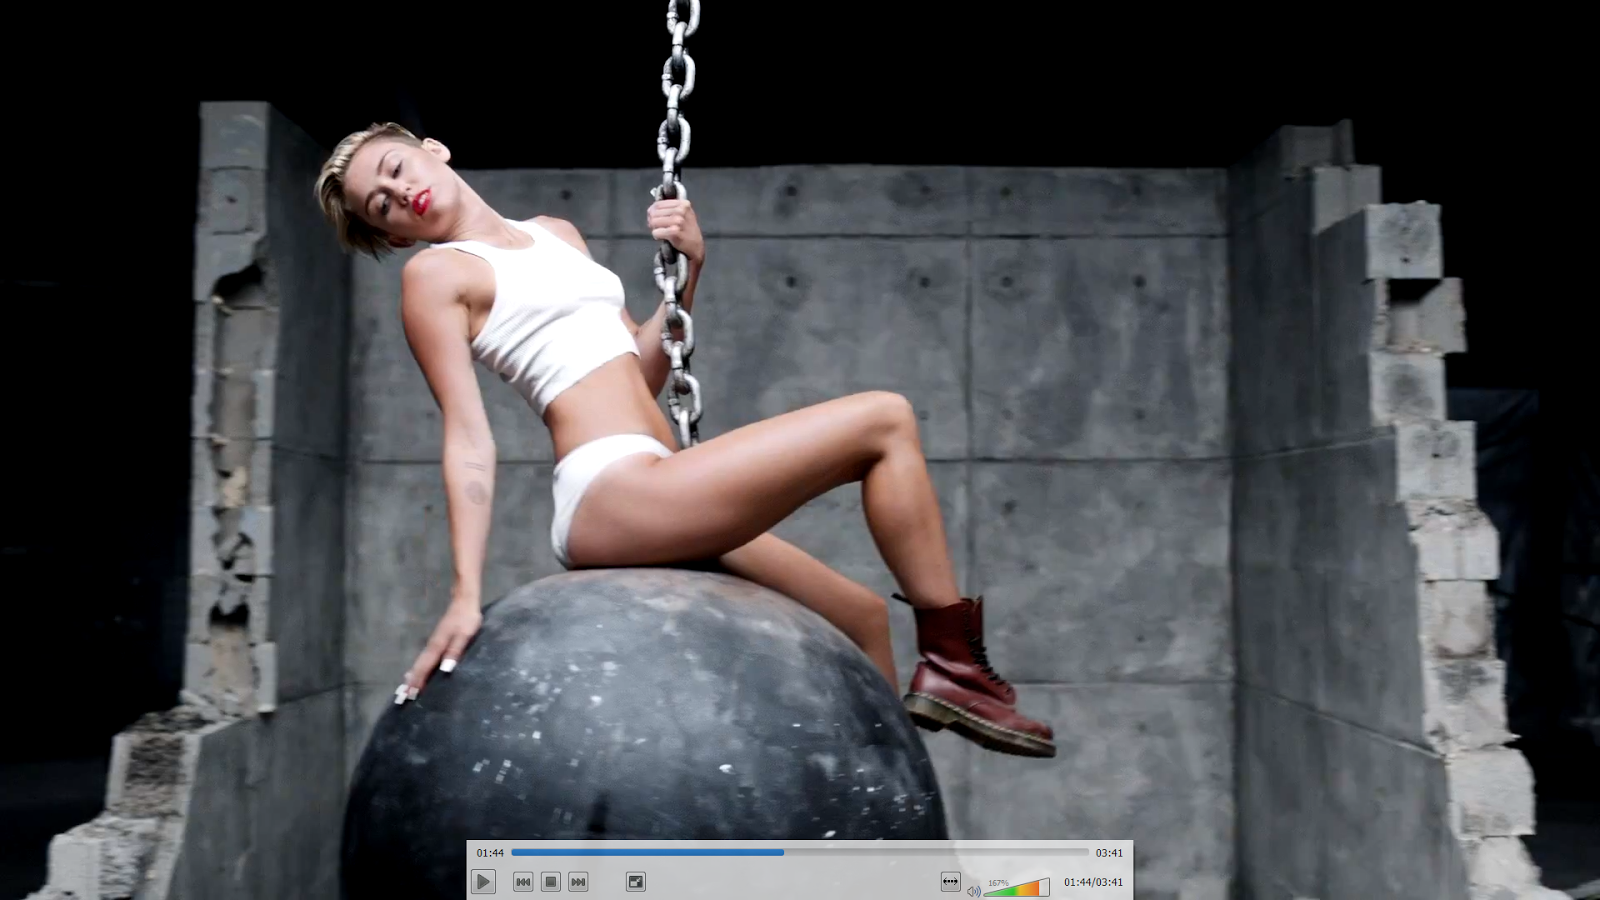 Miley Cyrus: MILEY CYRUS - WRECKING BALL VIDEO